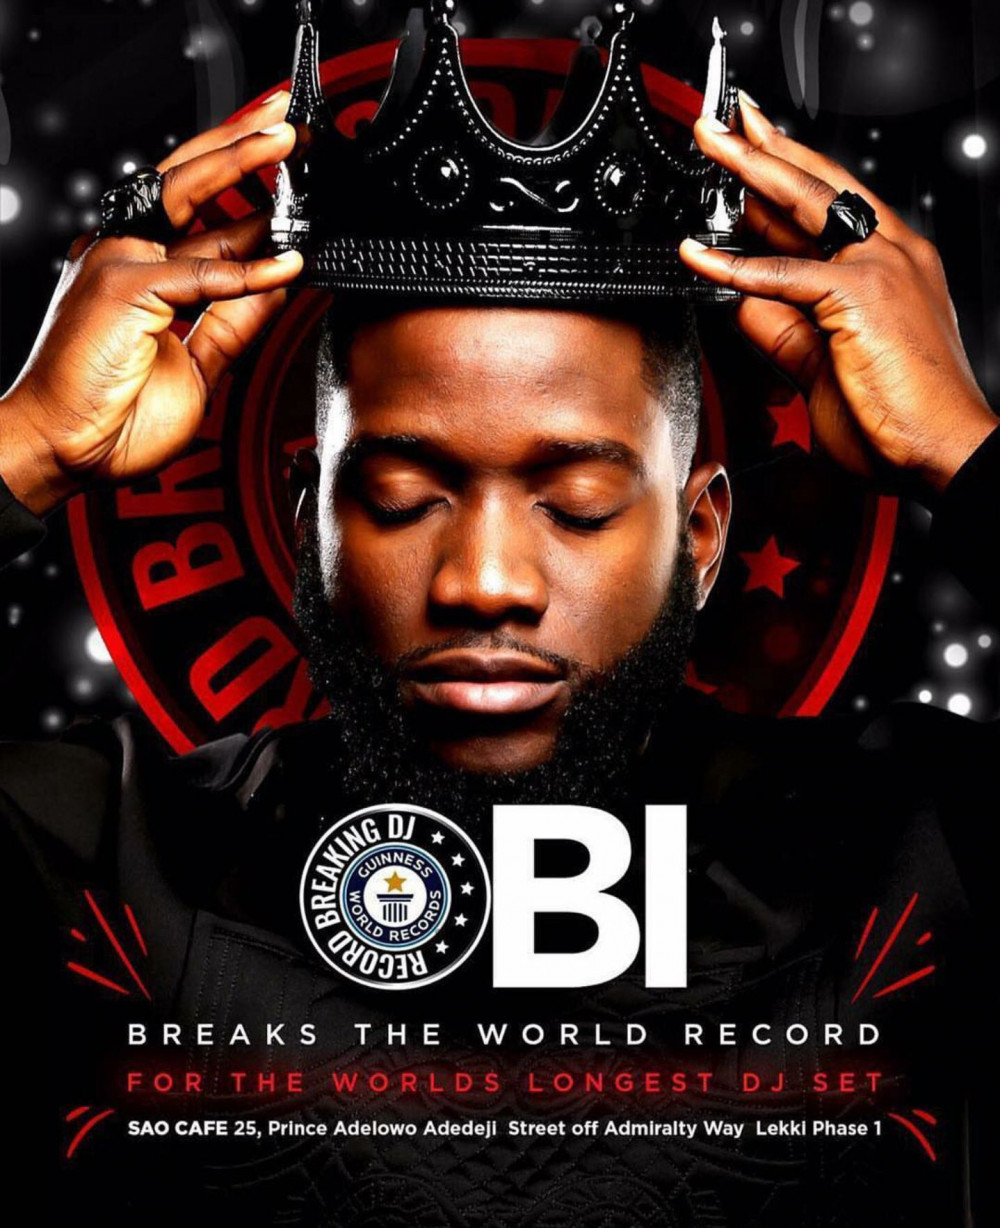 DJ OBI DID IT! He Beat the World Record for Longest DJ Set #DJObiWorldRecord